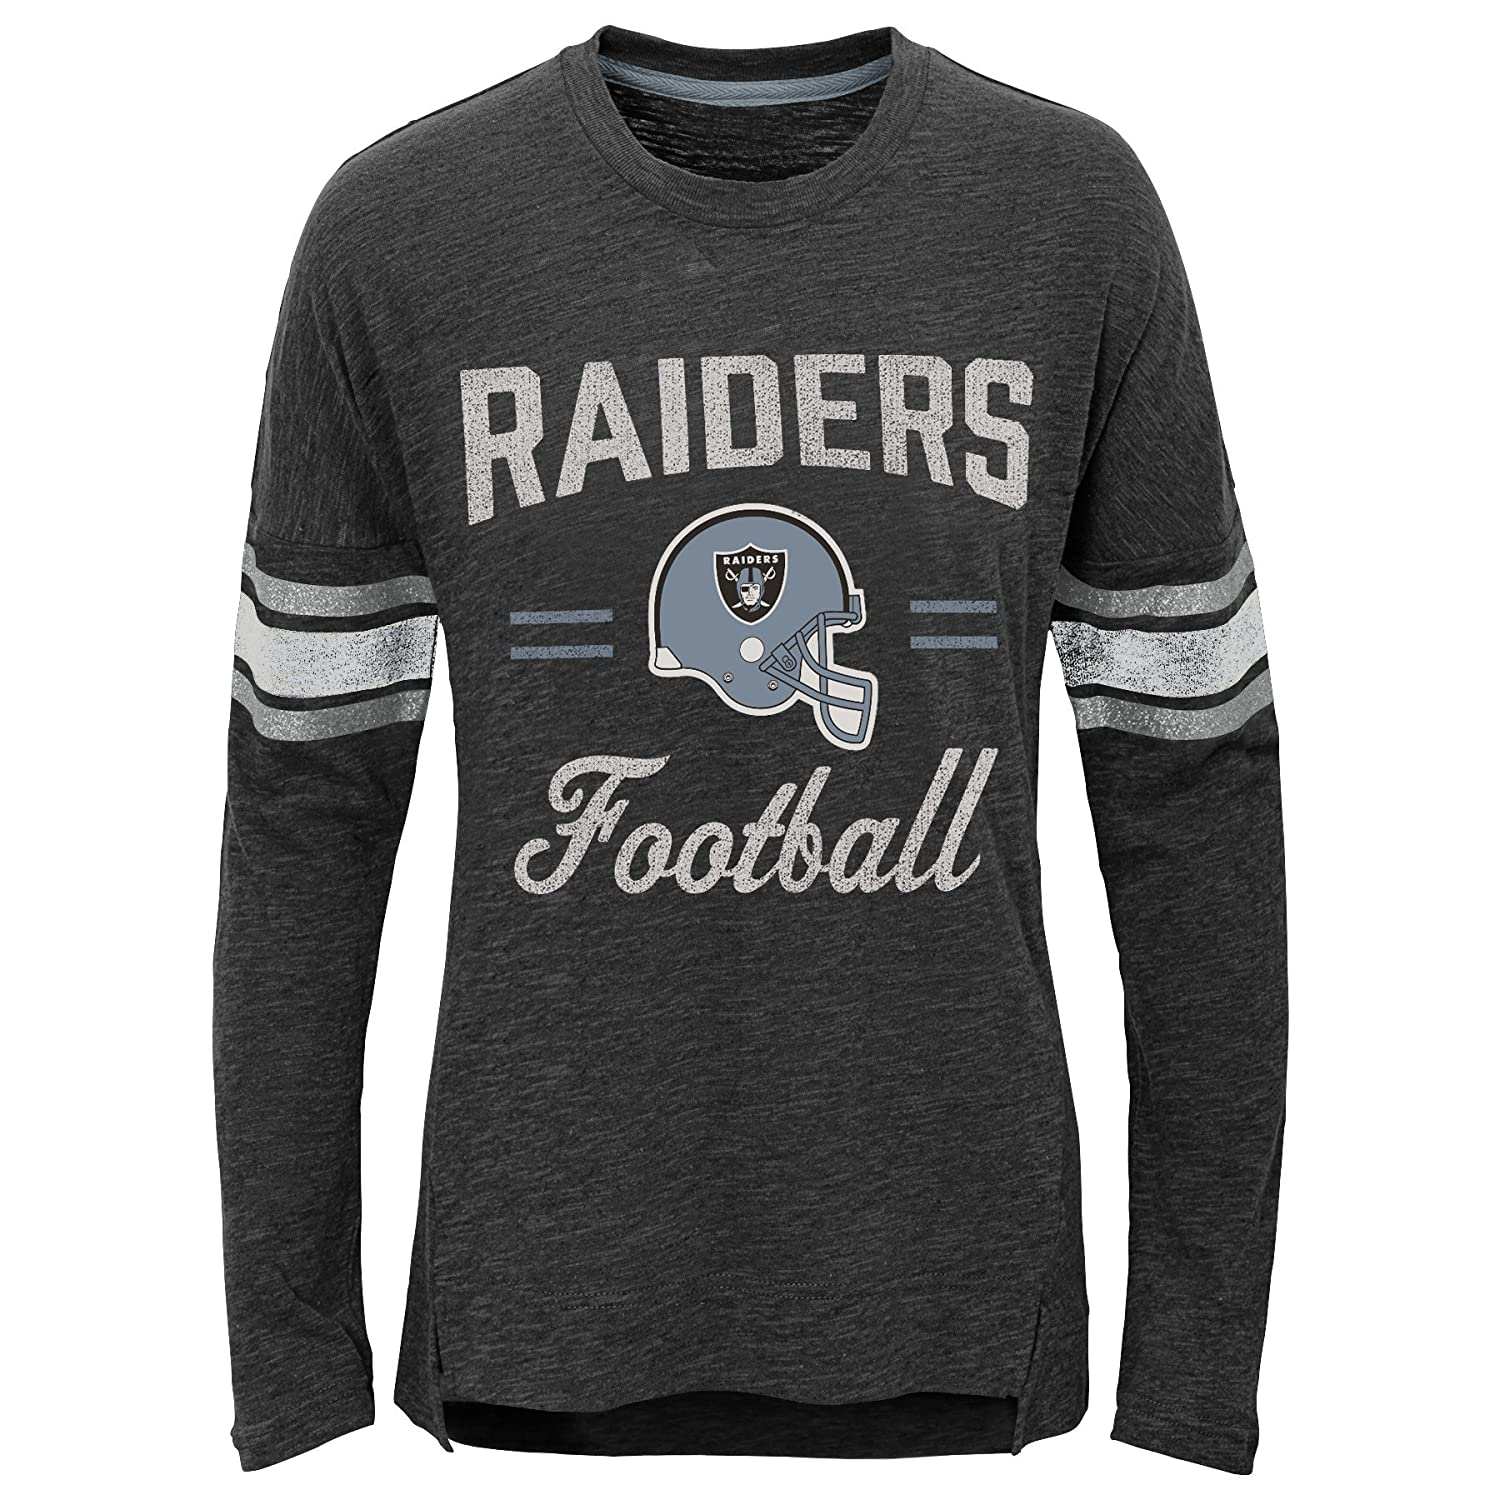 7-8 NFL Oakland Raiders Youth Boys Team Captain Long Sleeve Slub Tee Black Youth Small